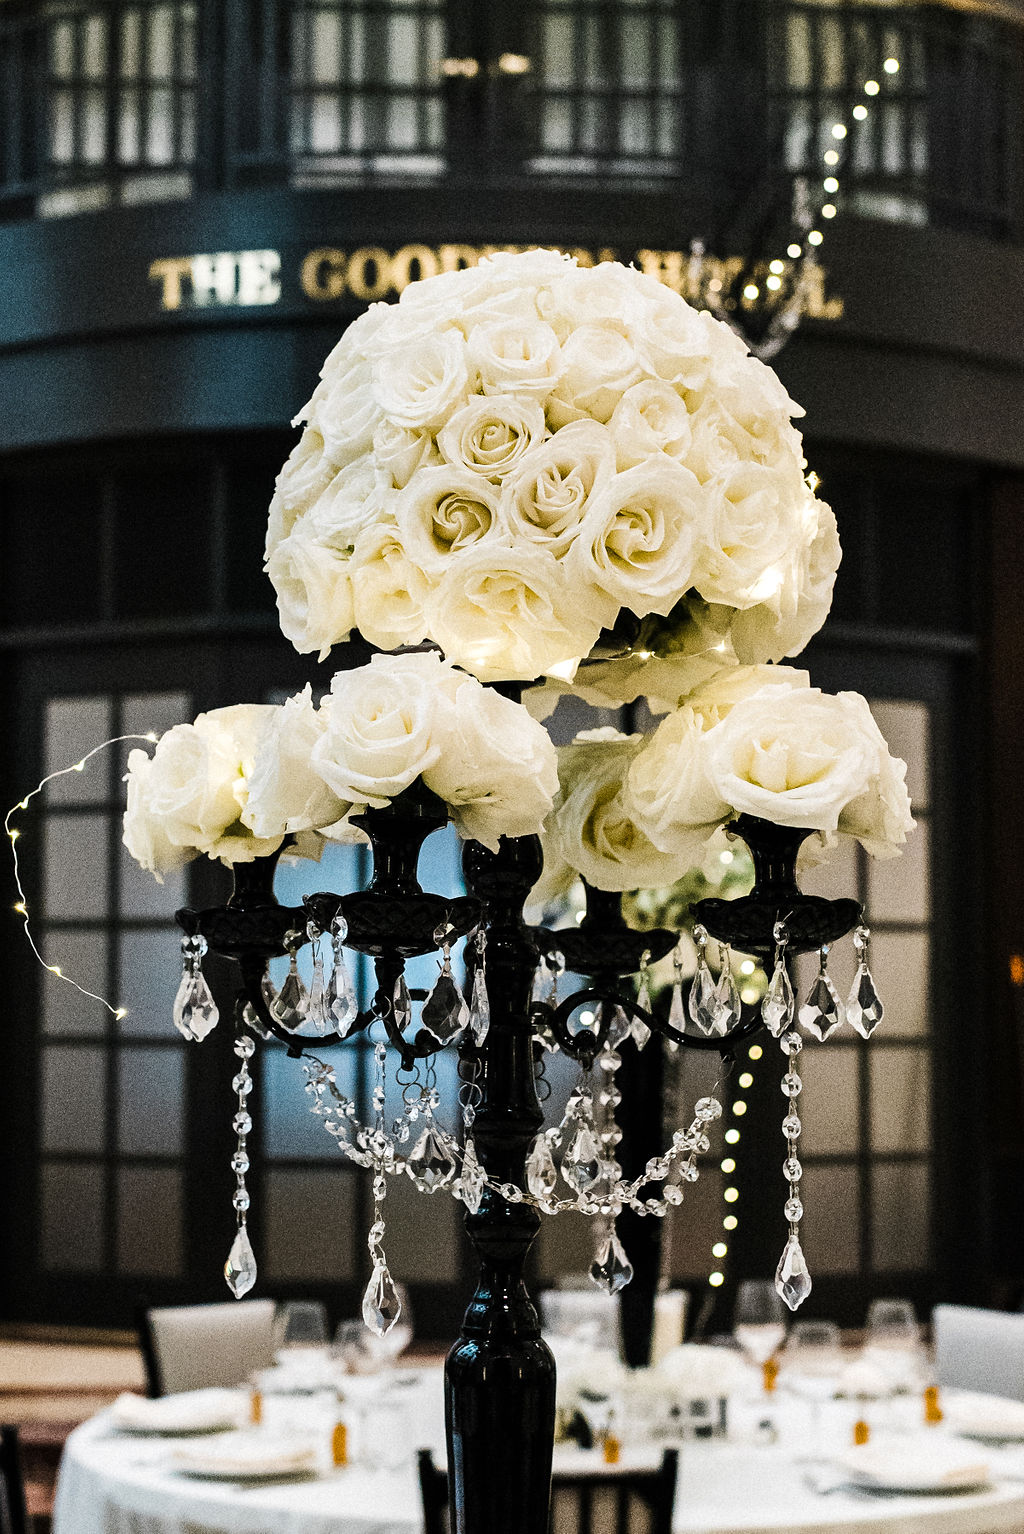 Tall black and white rose floral centerpieces for Melanie & Tyler Anderson's wedding - Pearl Weddings & Events